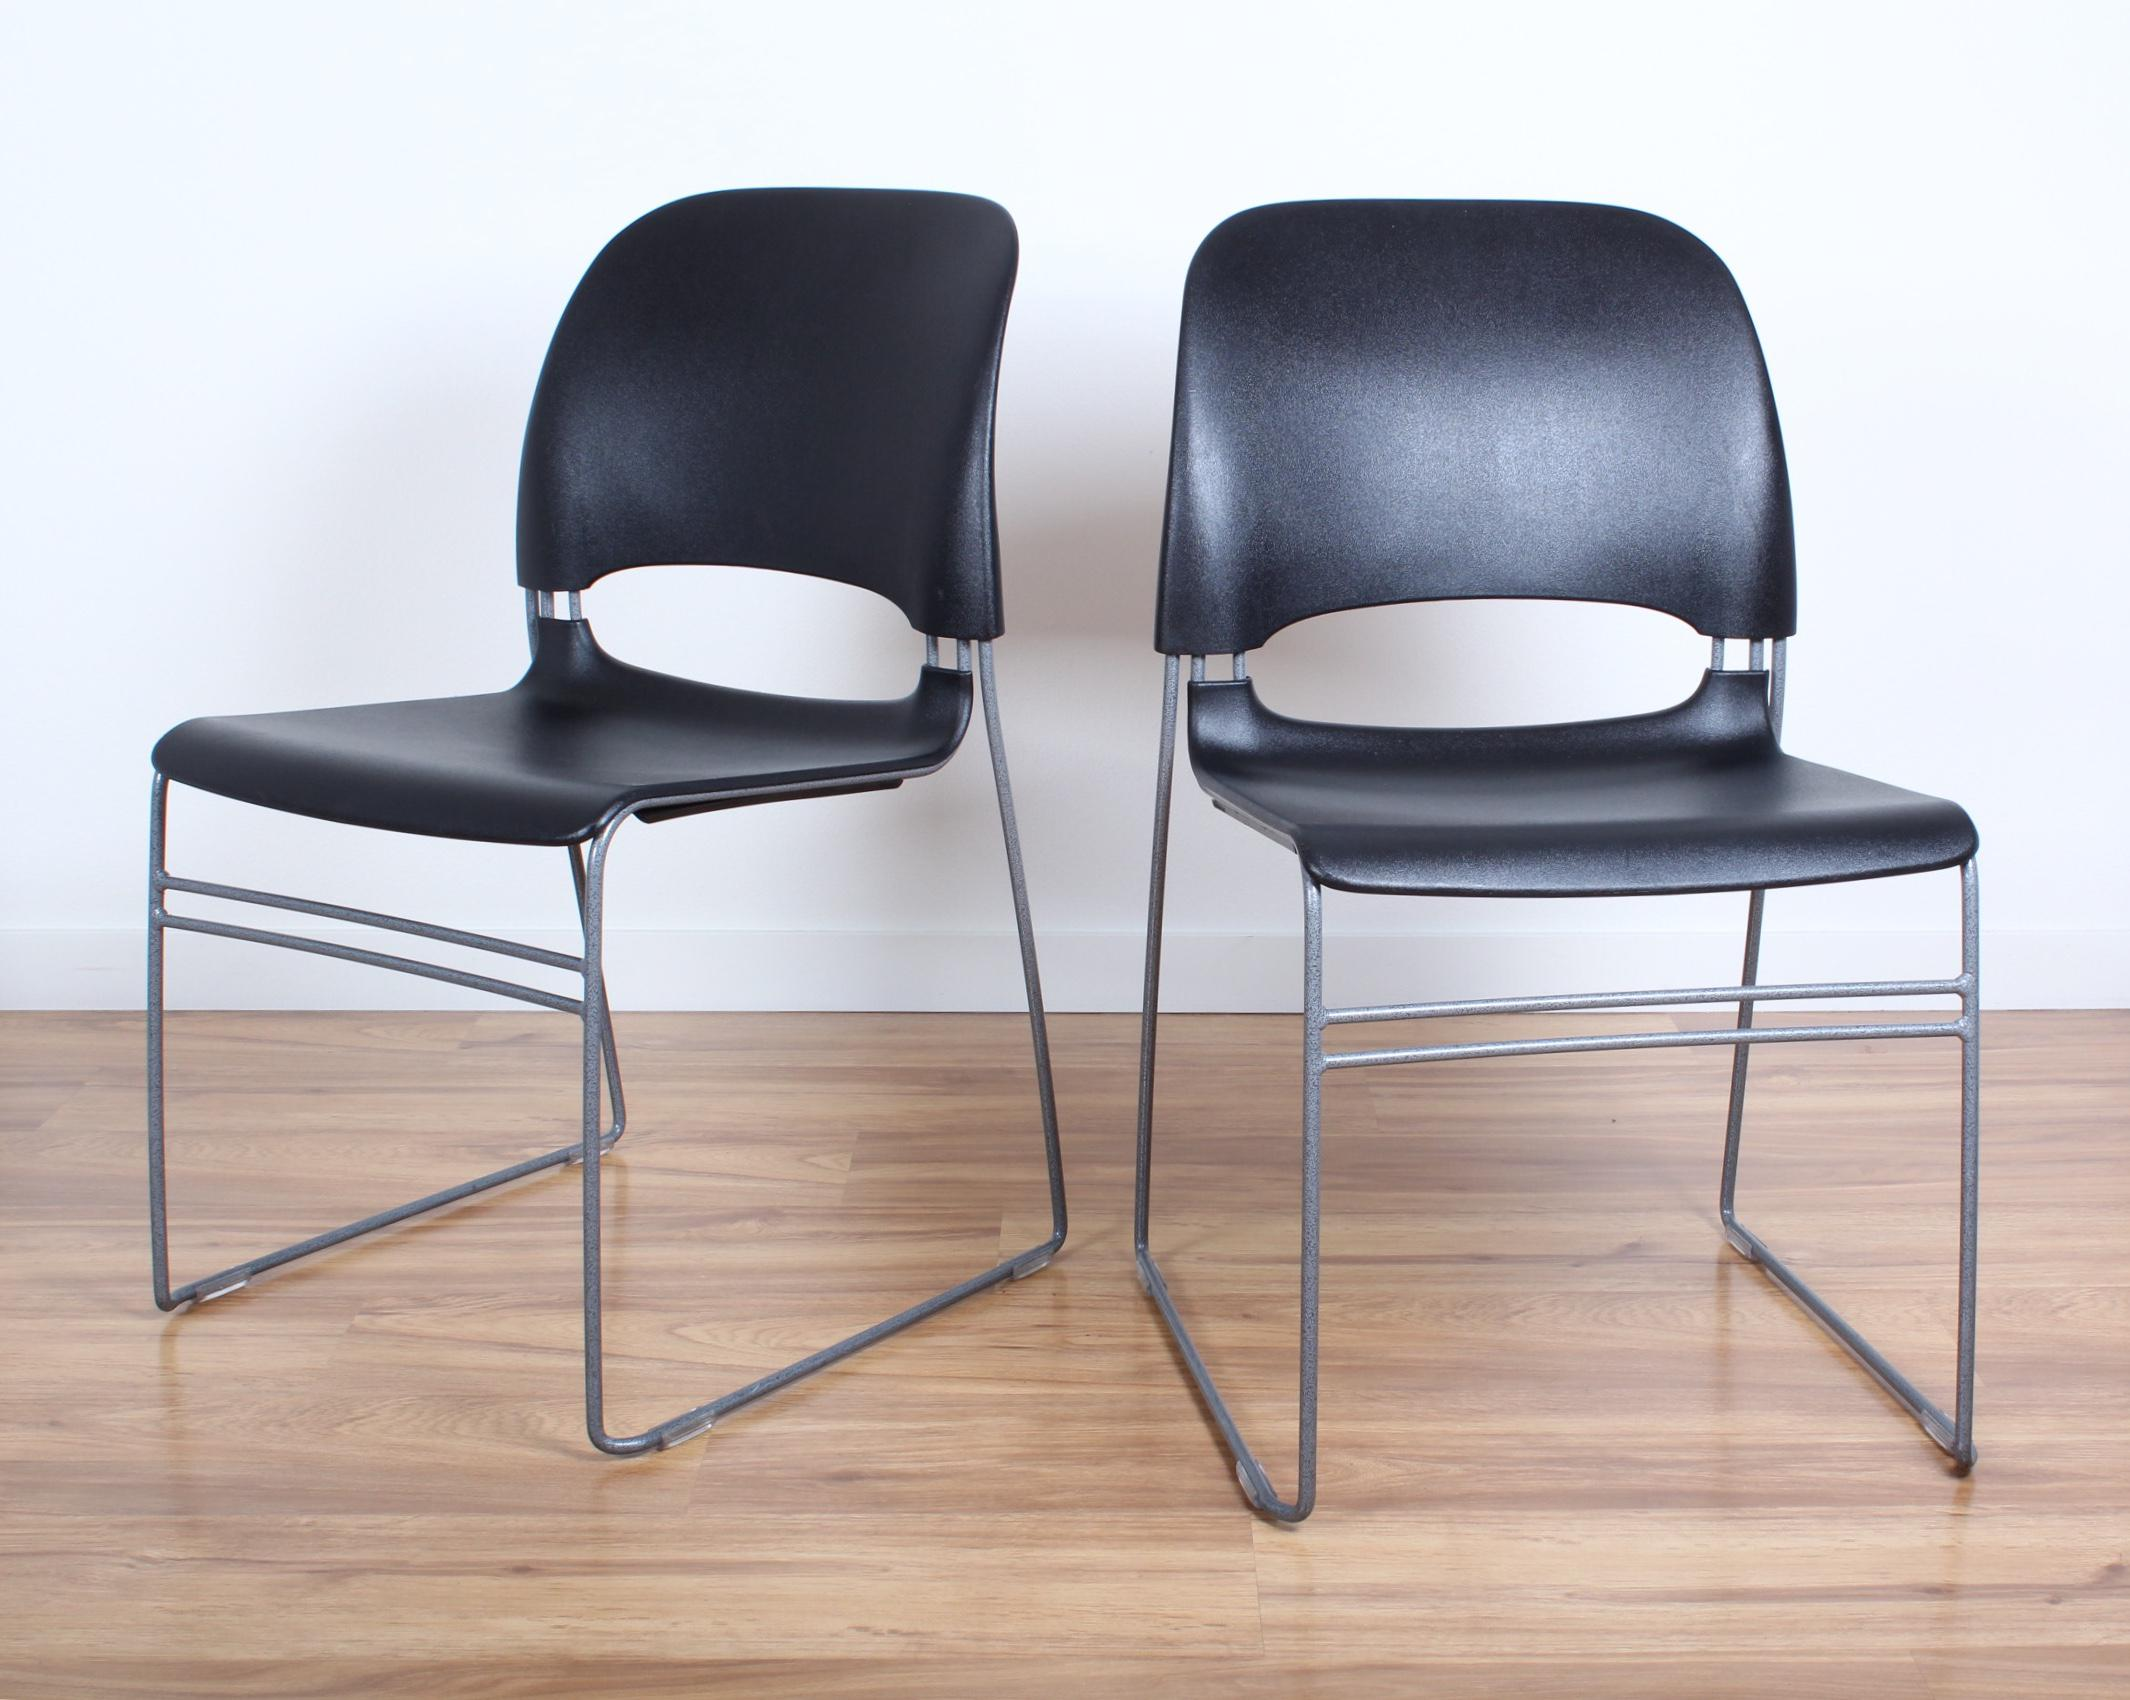 herman miller stacking chairs swopper chair review tom newhouse for limerick a pair modern sale image